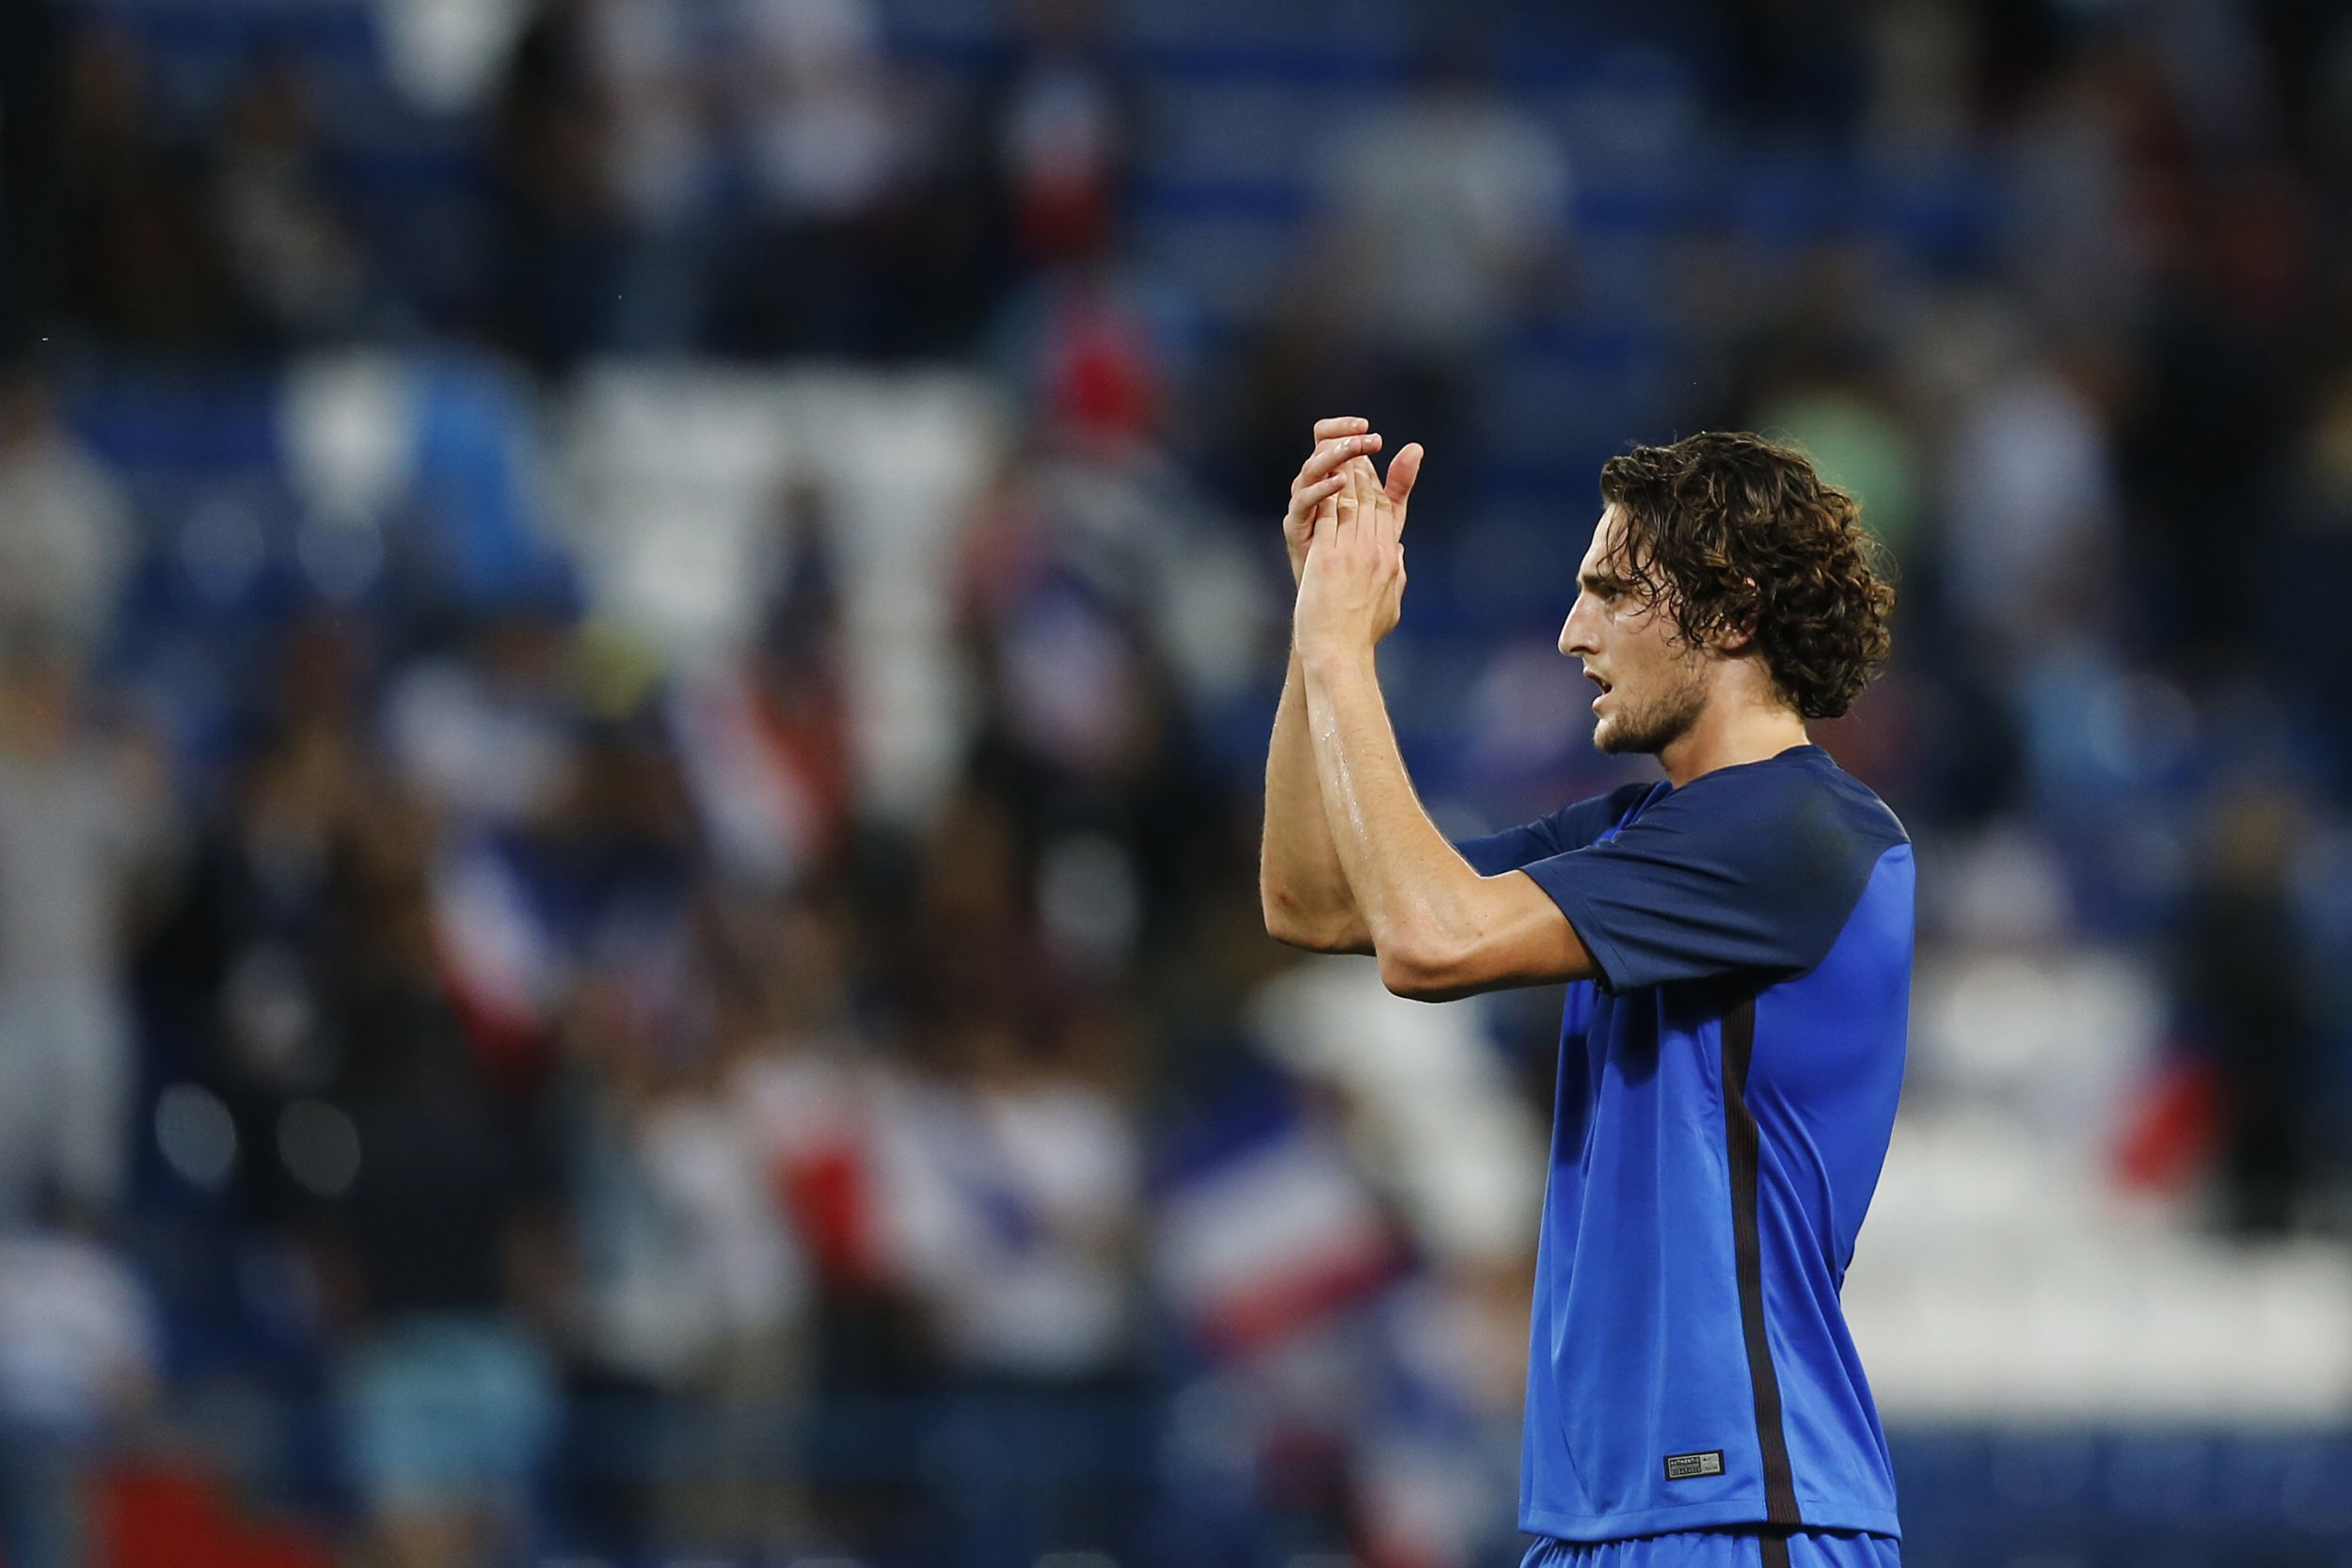 Paris Saint-Germain star Adrien Rabiot